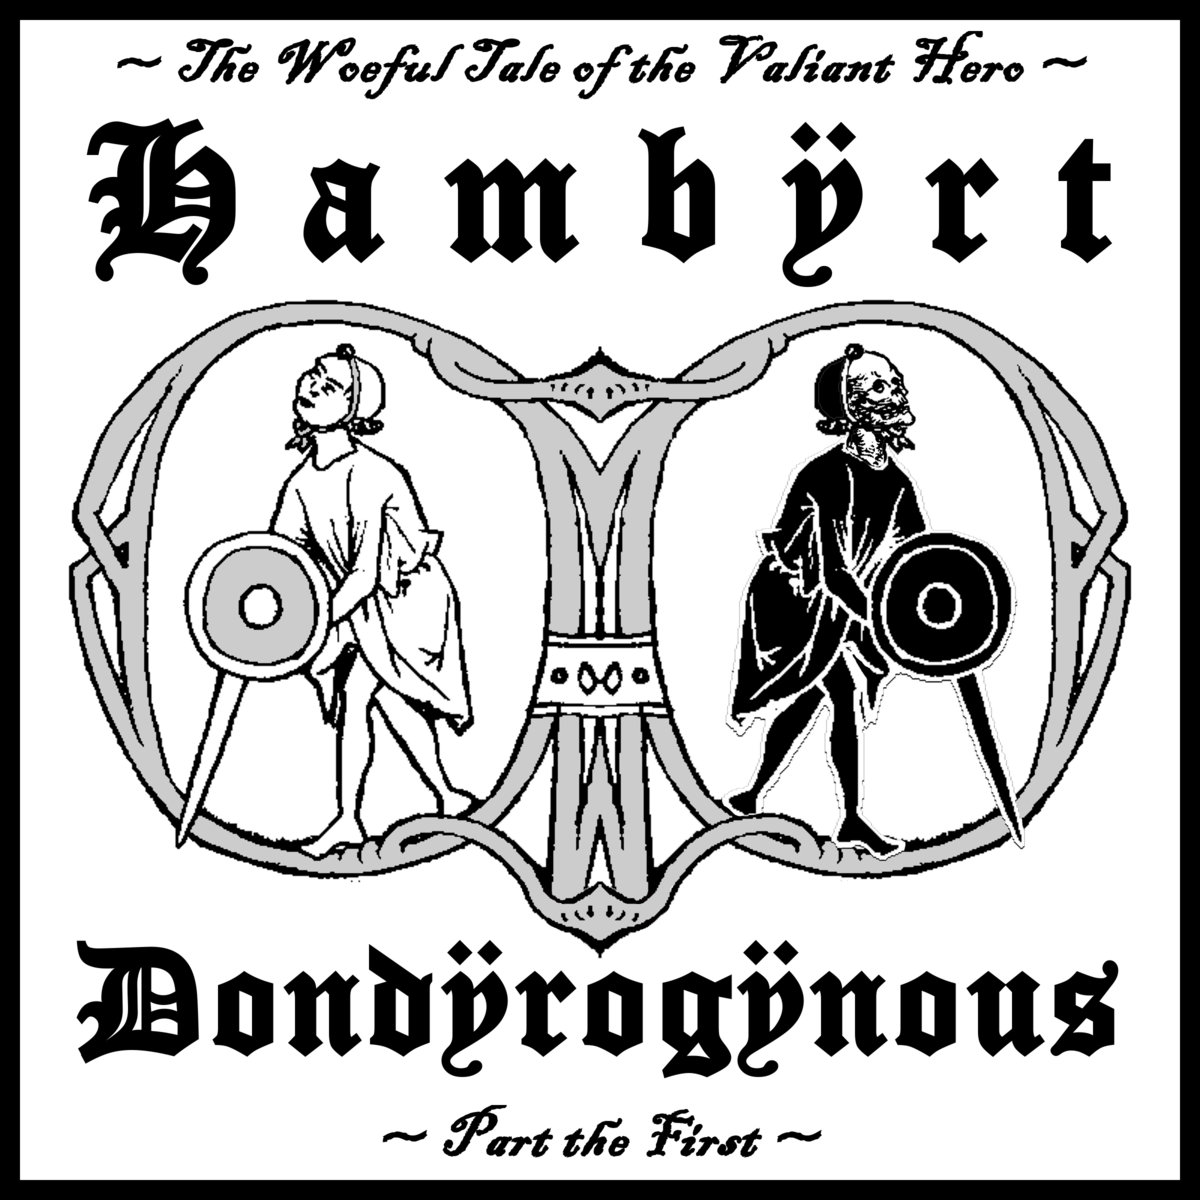 The Woeful Tale Of Hambert Donderogenous, Part The First